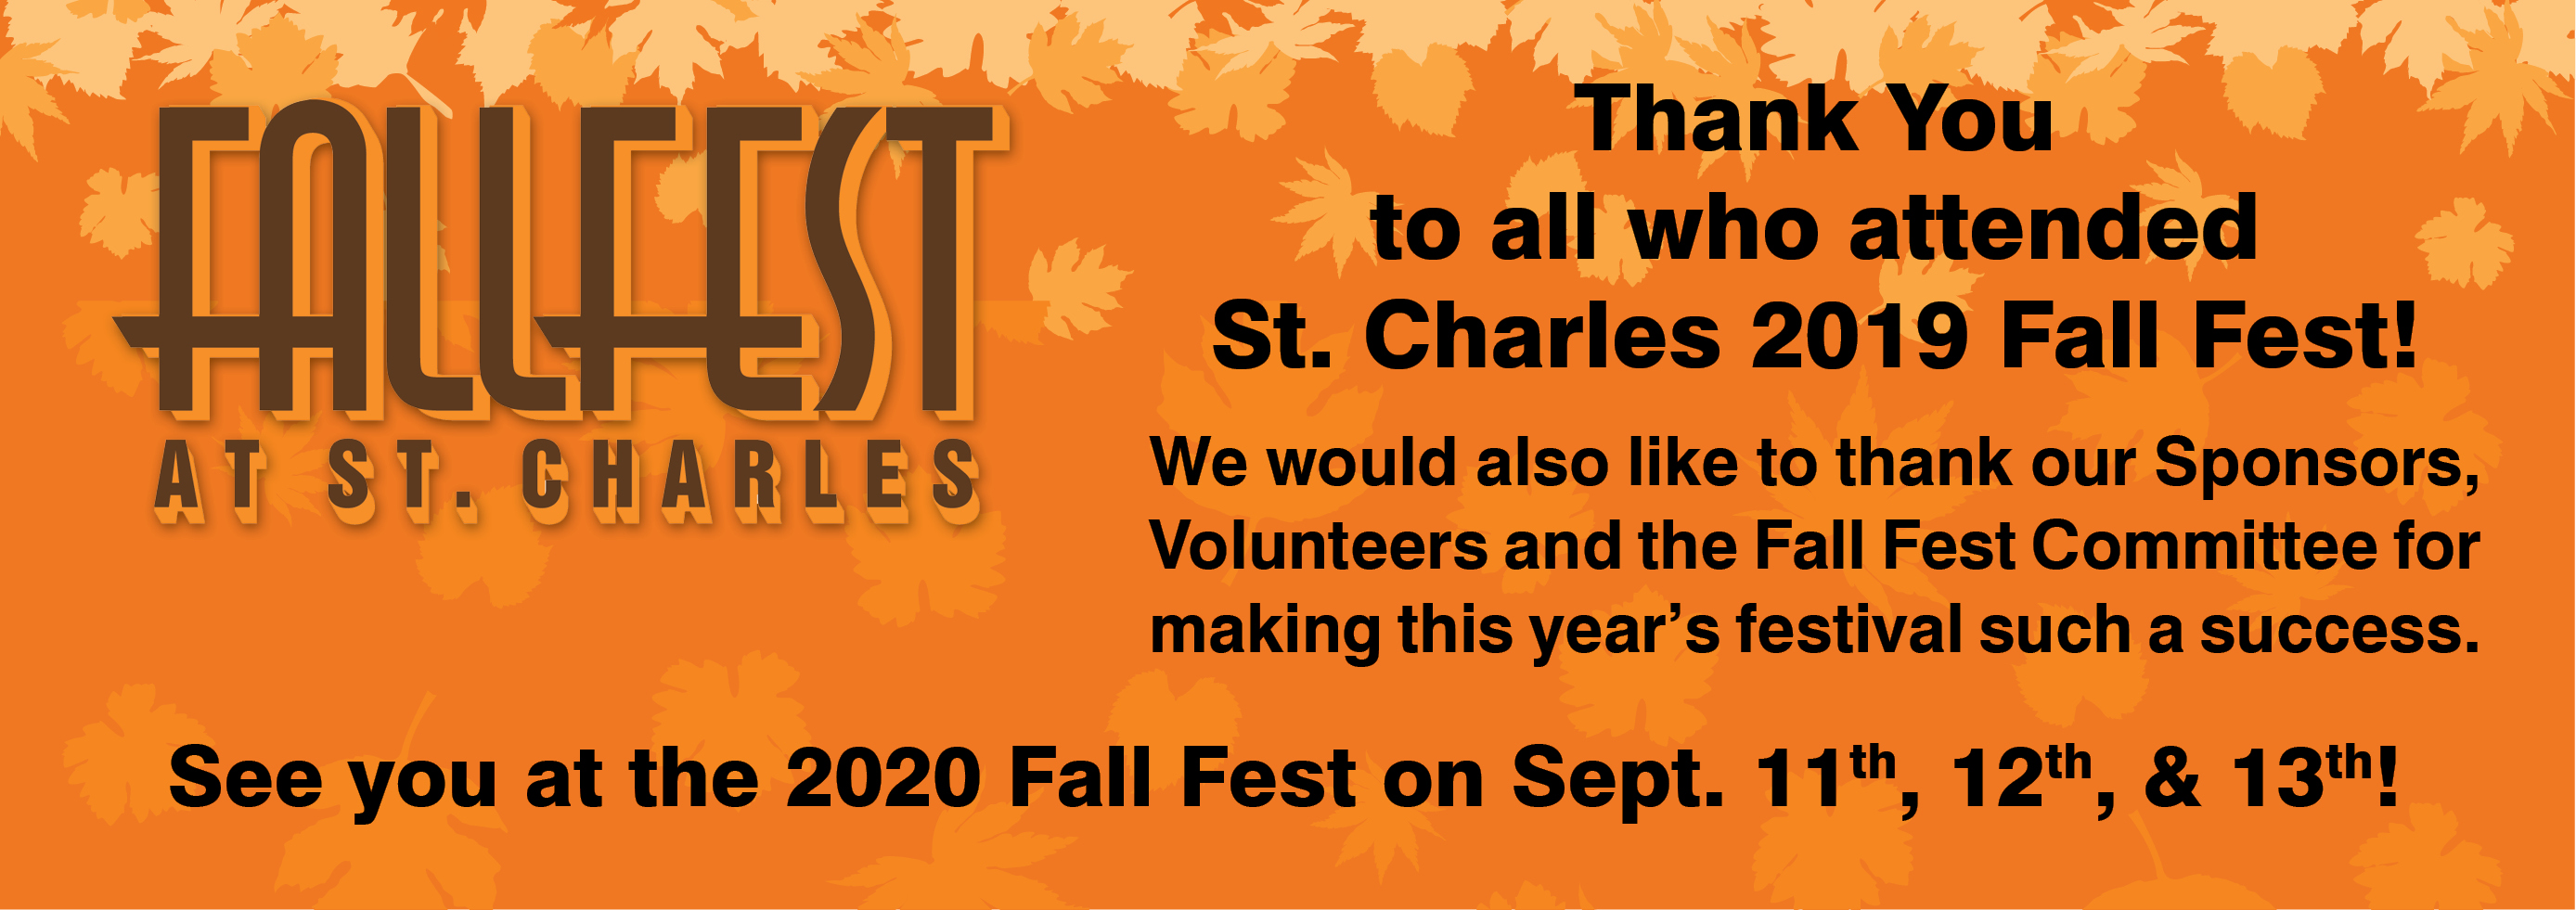 2019 Fall Fest Thank You